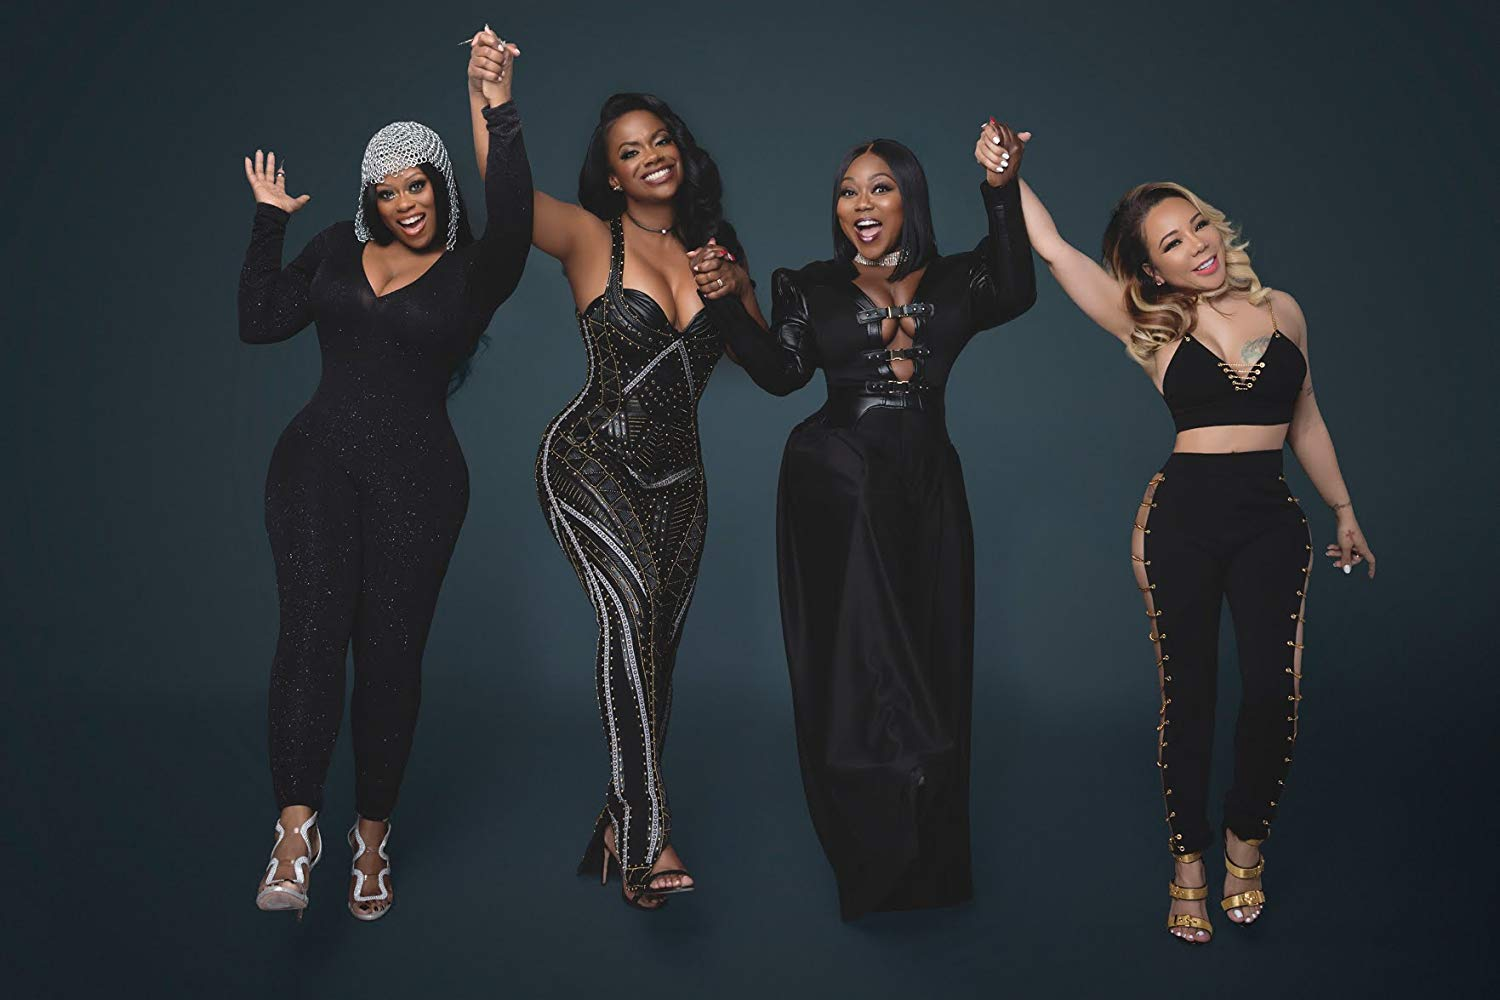 """""""tiny-harris-and-tamika-scott-are-showing-off-their-best-angles-on-camera-and-kandi-burruss-is-here-for-it"""""""